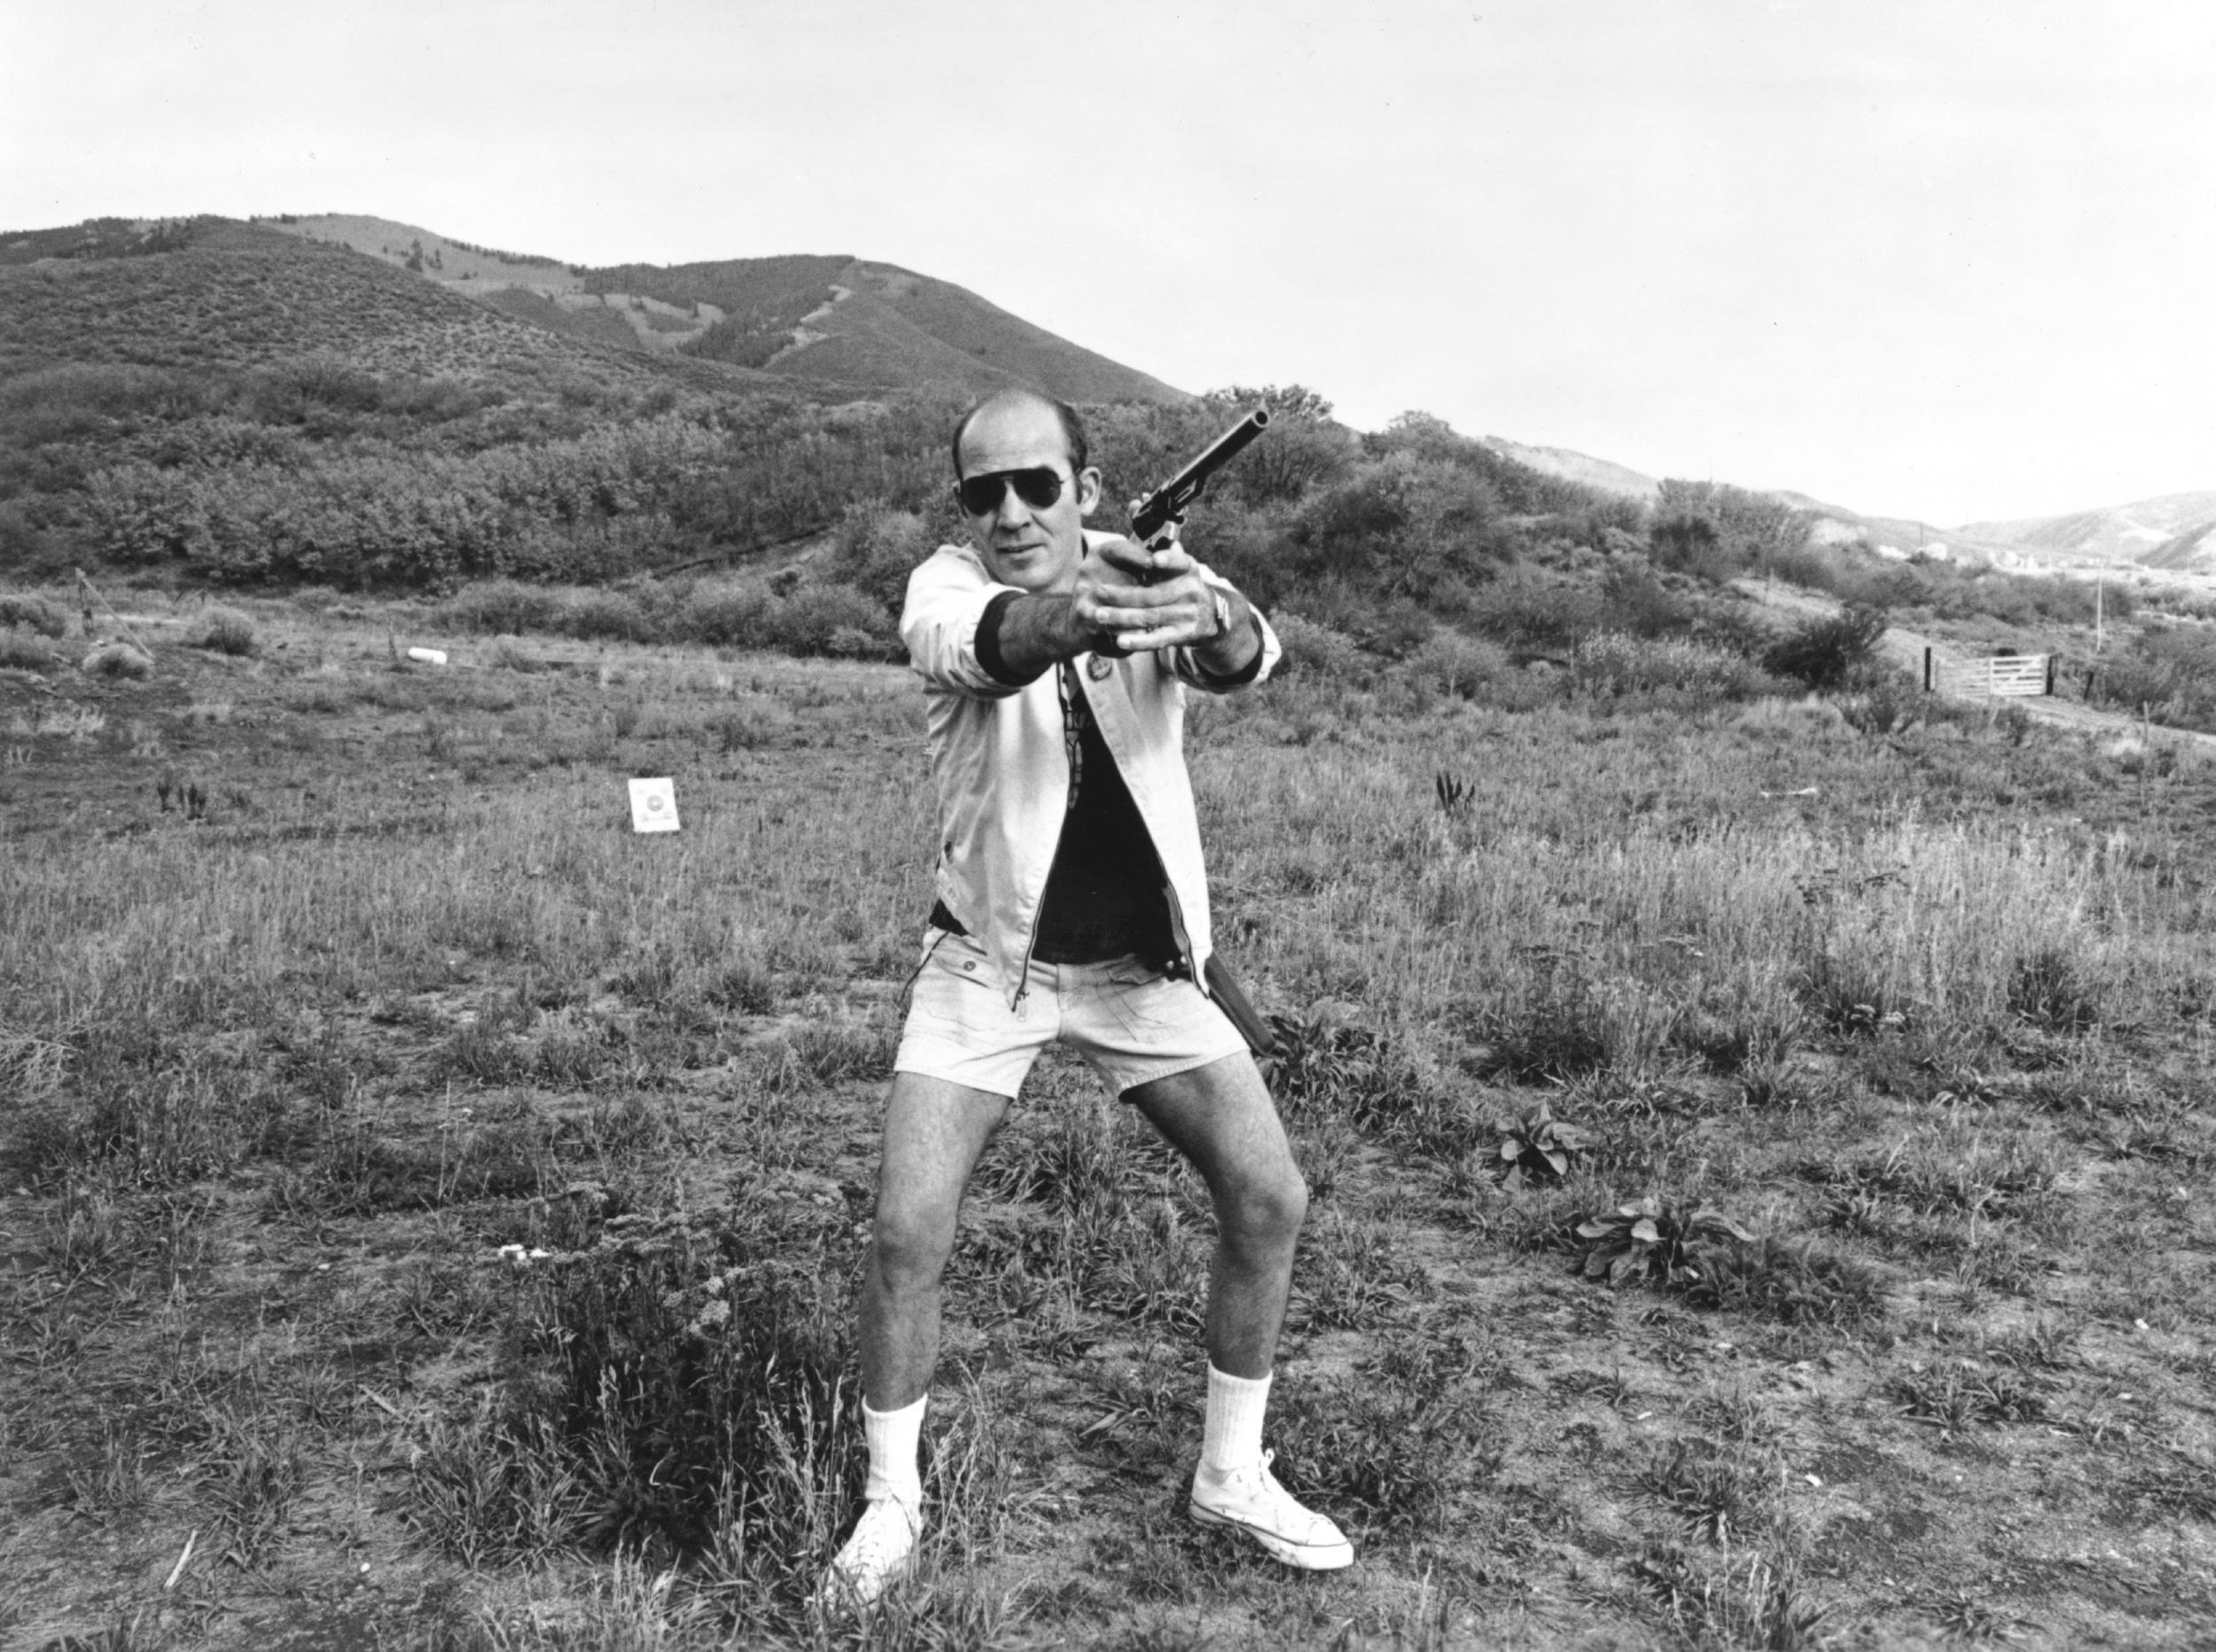 """Playing Golf on Acid with Hunter S. Thompson  It worked wonders for his handicap.  There was once a time in every serious editor's life when he had to play 18 holes zonked on acid with Hunter S. Thompson. An exclusive excerpt from  The Accidental Life , by former Esquire editor in chief Terry McDonell.  George Plimpton and I decided to visit Hunter after he sent me a photograph of himself sinking a 30-foot putt at the Aspen Golf Club. He signed it to me with Res Ipsa Loquitur across the image, and there was a message on the back:Come out and play golf with me sometime—bring George—and money; I will beat both of you like mules.  Hunter's Owl Farm had seen numerous visitations far more exalted than ours. Jimmy Carter and Keith Richards, among dozens of others, had passed through, sometimes shooting clay pigeons and improvised targets in the meadow next to the house. After all, Owl Farm was designated a """"Rod and Gun Club"""" on Hunter's stationery. Bill Murray had come close to moving in when he was preparing to play Hunter in Where the Buffalo Roam,and Johnny Depp actually did before he filmed Fear and Loathing in Las Vegas.Hunter liked to play host—even picking you up at the airport in the '71 Chevrolet Impala convertible he called the """"Red Shark."""" When John Belushi died and there were rumors he had been visiting Hunter,the wires quoted him saying John was """"welcome at Owl Farm dead or alive.""""  """"Friends of friends can't bring friends"""" was taped to the refrigerator; but they did. Hunter complained, but when you saw him playing his games with new guests you knew he loved it. They would tell him how much they were influenced by this or that in his work and he would ask them to read a little of it aloud. Just a paragraph to start, but it would become a page and then a chapter. """"Slower,"""" Hunter would say. """"Slower."""" Some people wondered if they'd ever get out of there.  I had visited Owl Farm before and told George there would be distractions, but we arrived hopeful about our """